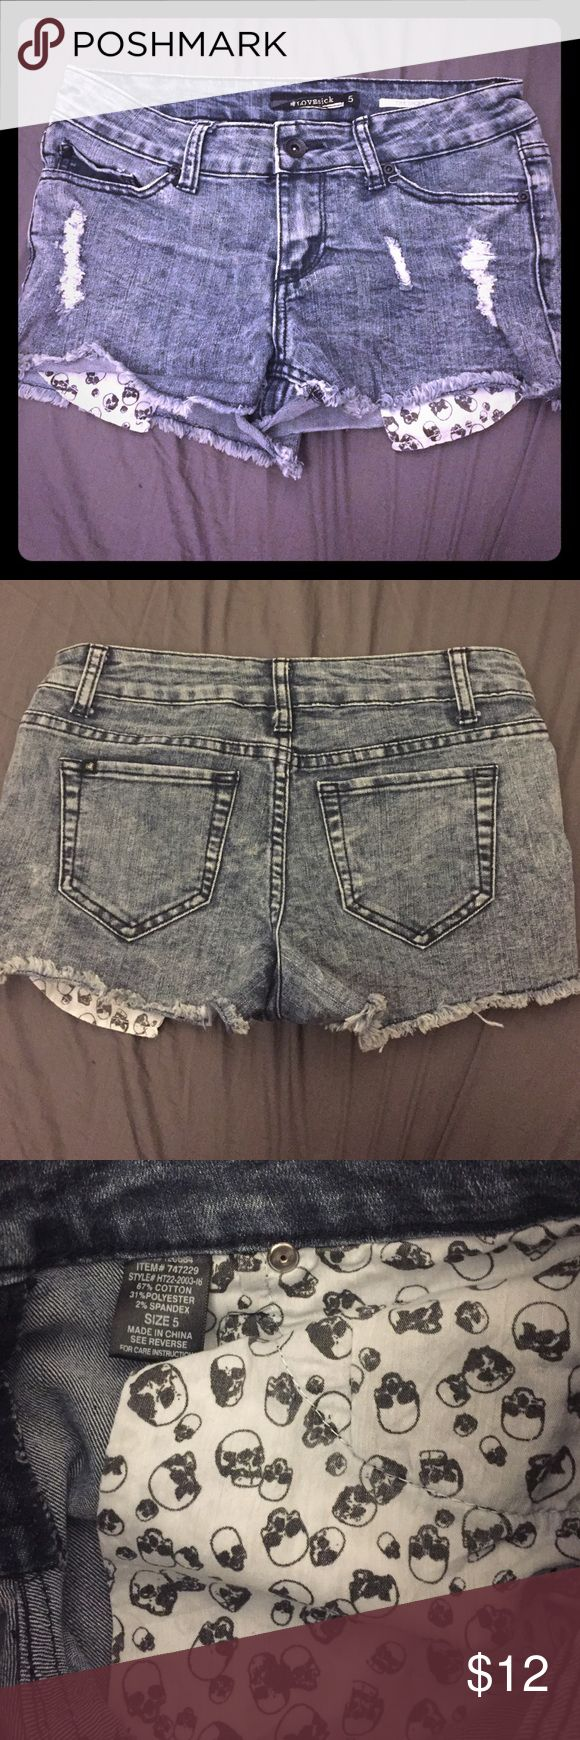 Acid Wash Shorts with Skull Pockets Worn for a season but still in great condition. Size 5. The pockets have a skull design and is meant to peek out when wearing the shorts. Hot Topic Shorts